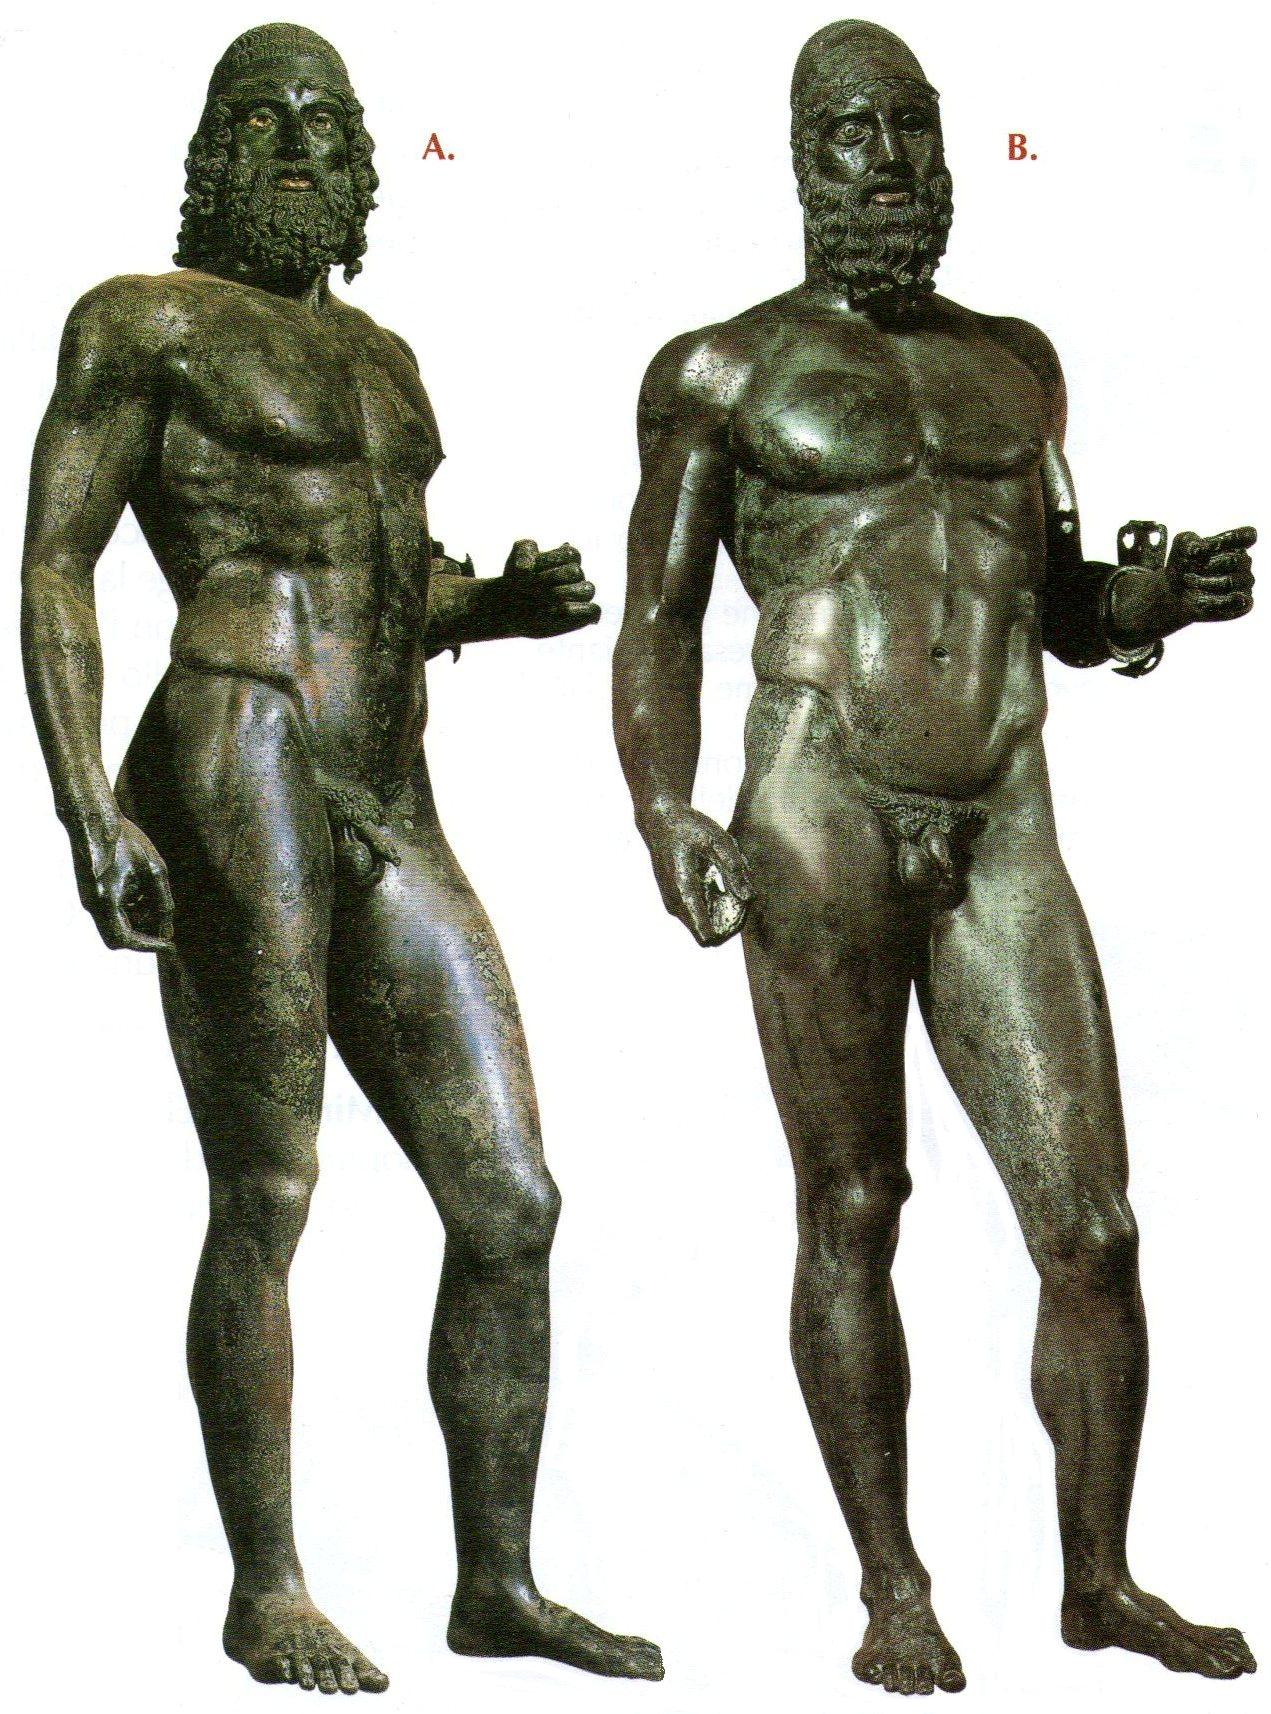 Riace Bronzes or the Riace Warriors, the pair of life size statues depict naked Greek warriors and were created between 460–420 BC.